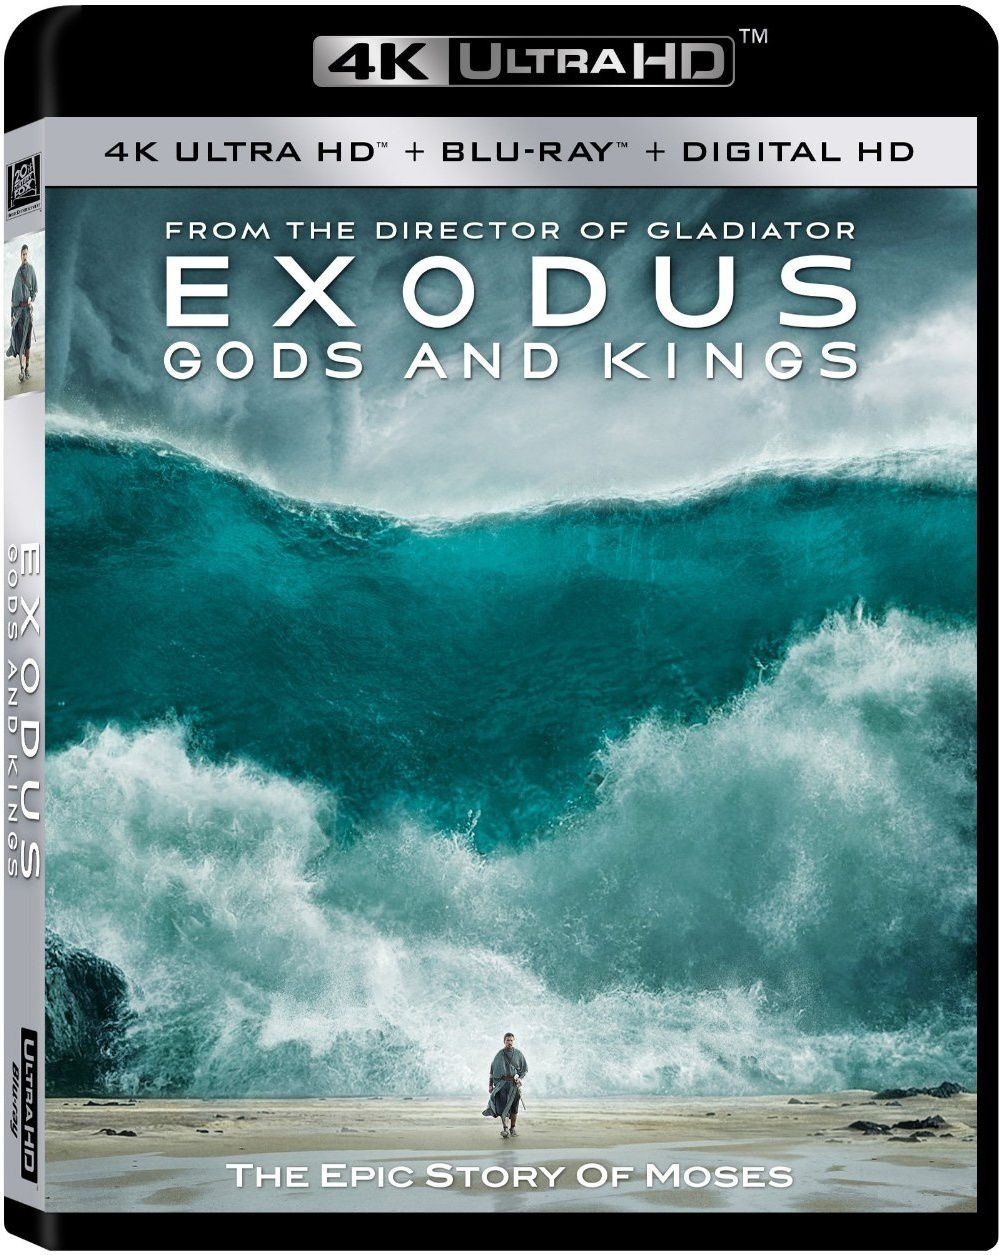 Exodus en blu-ray ultra hd